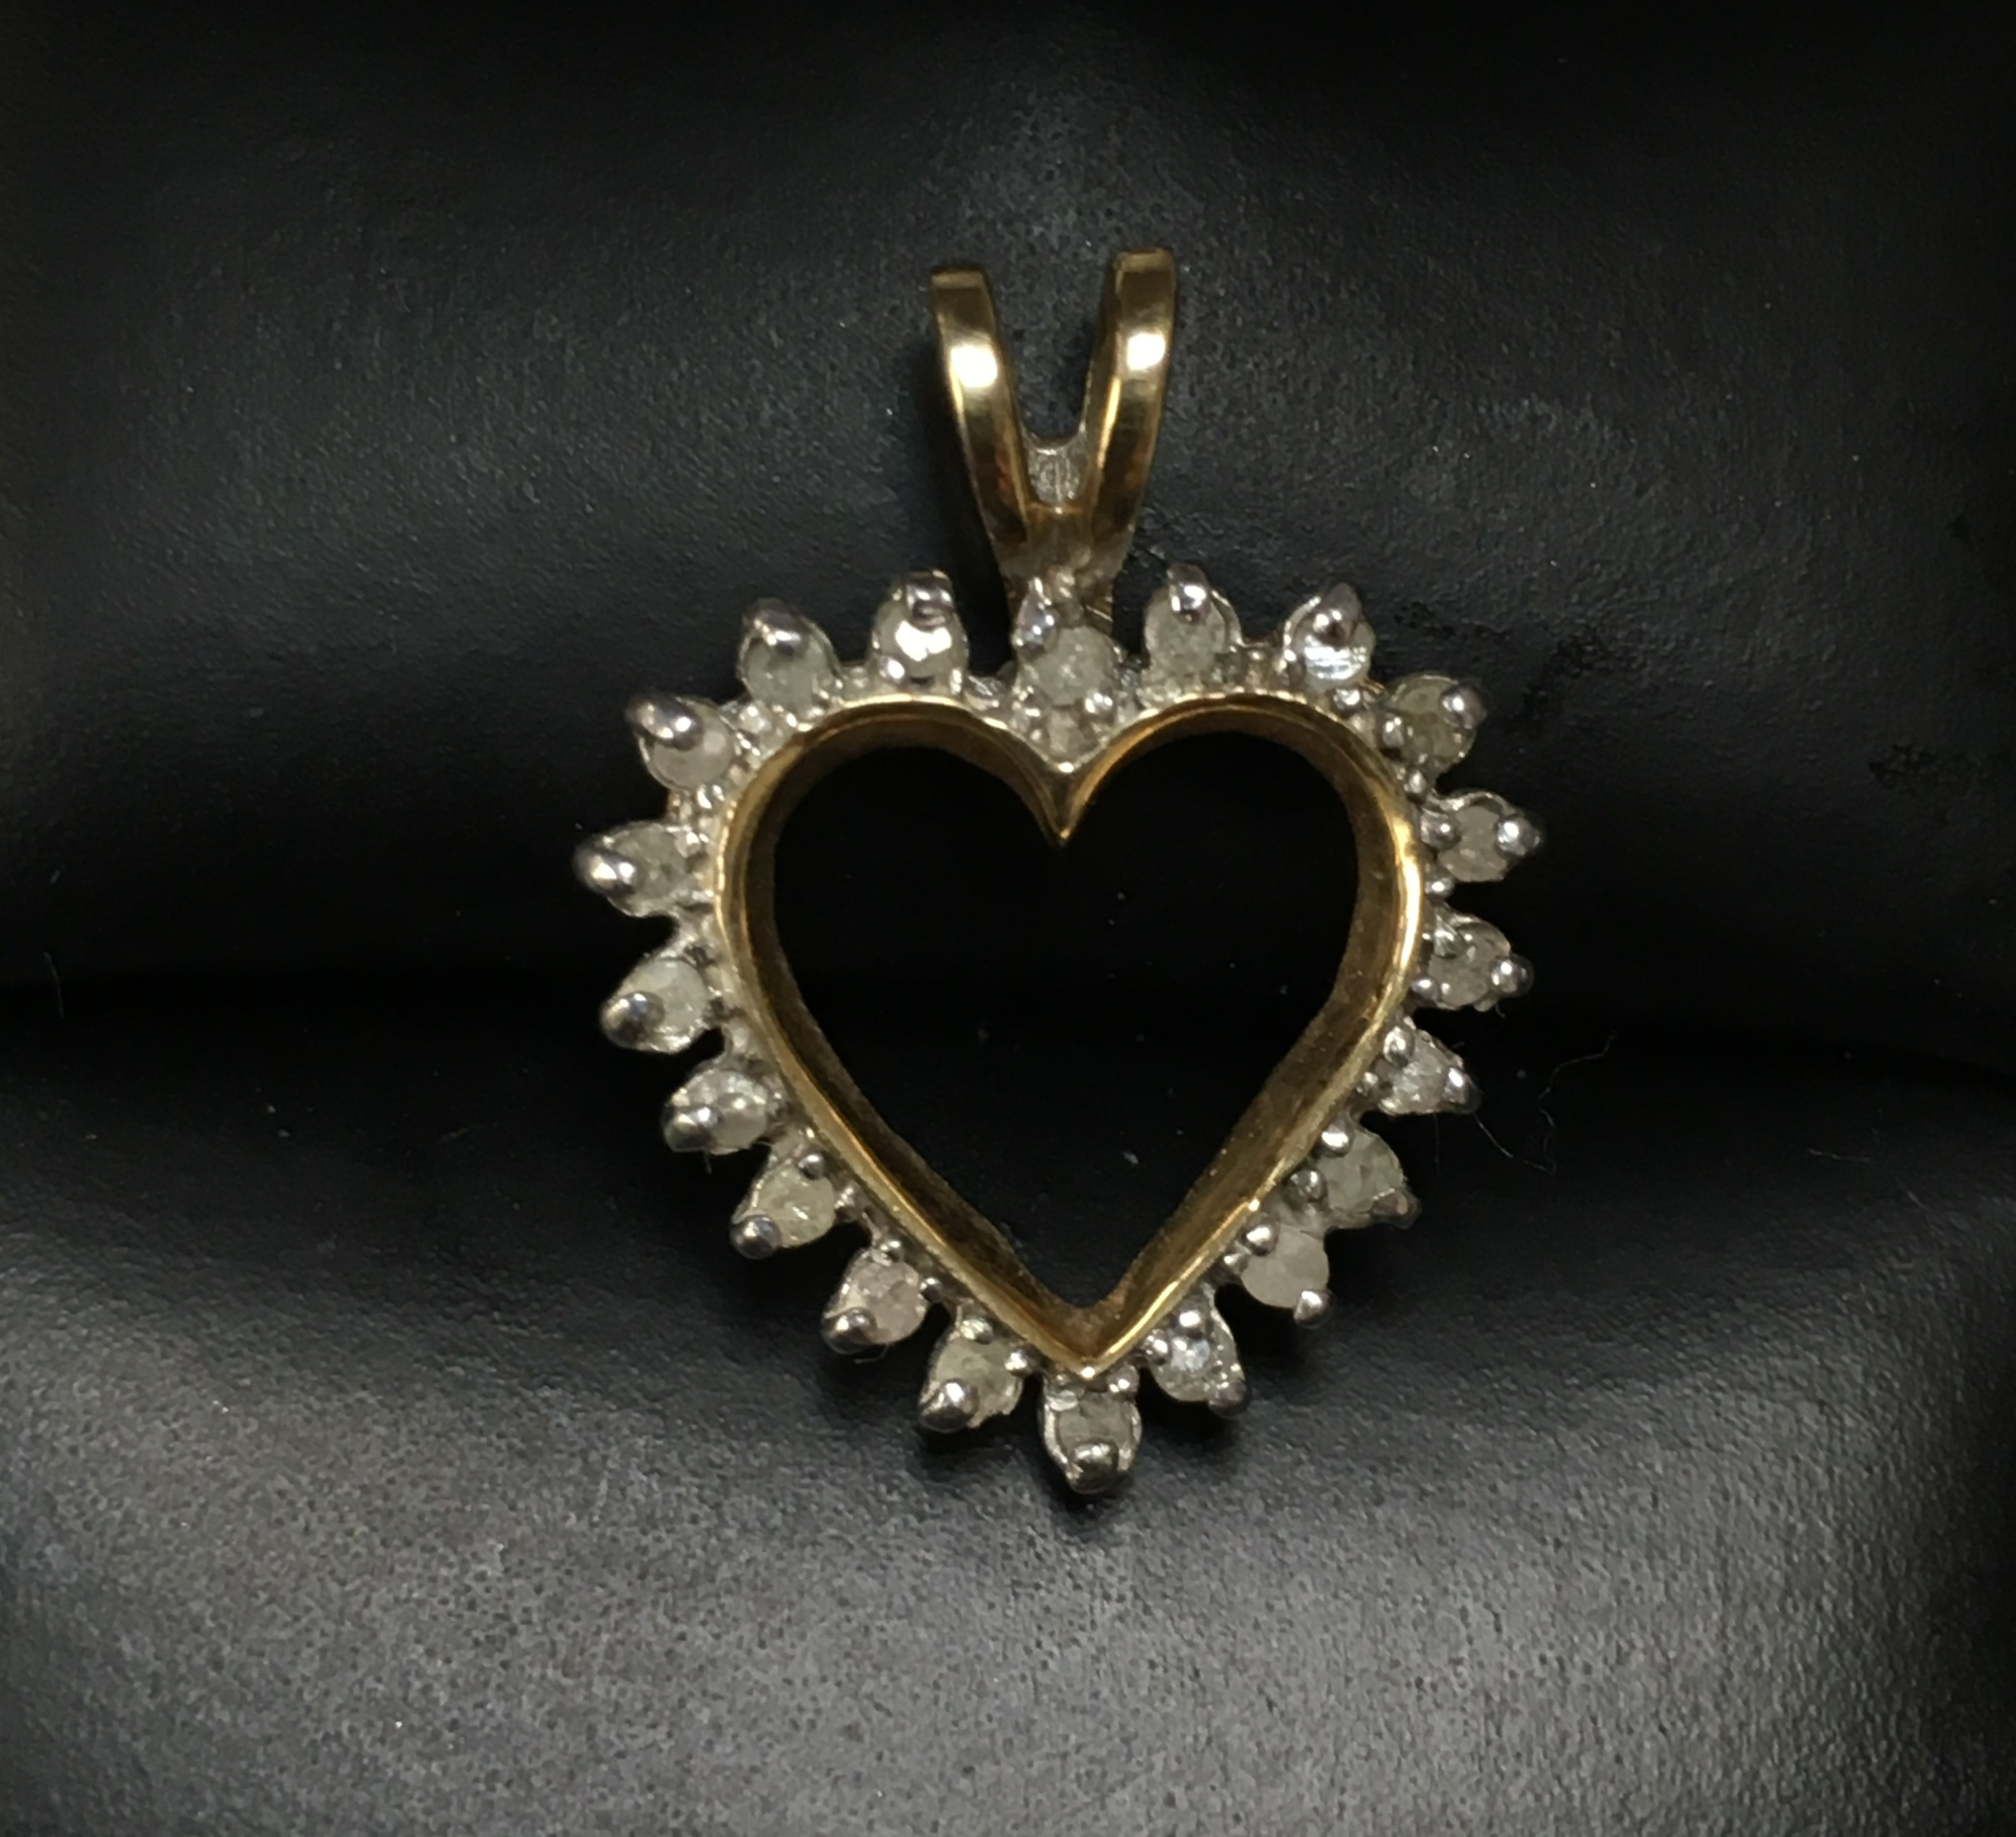 10KT YELLOW GOLD OPEN HEART CHARM WITH CLEAR STONES